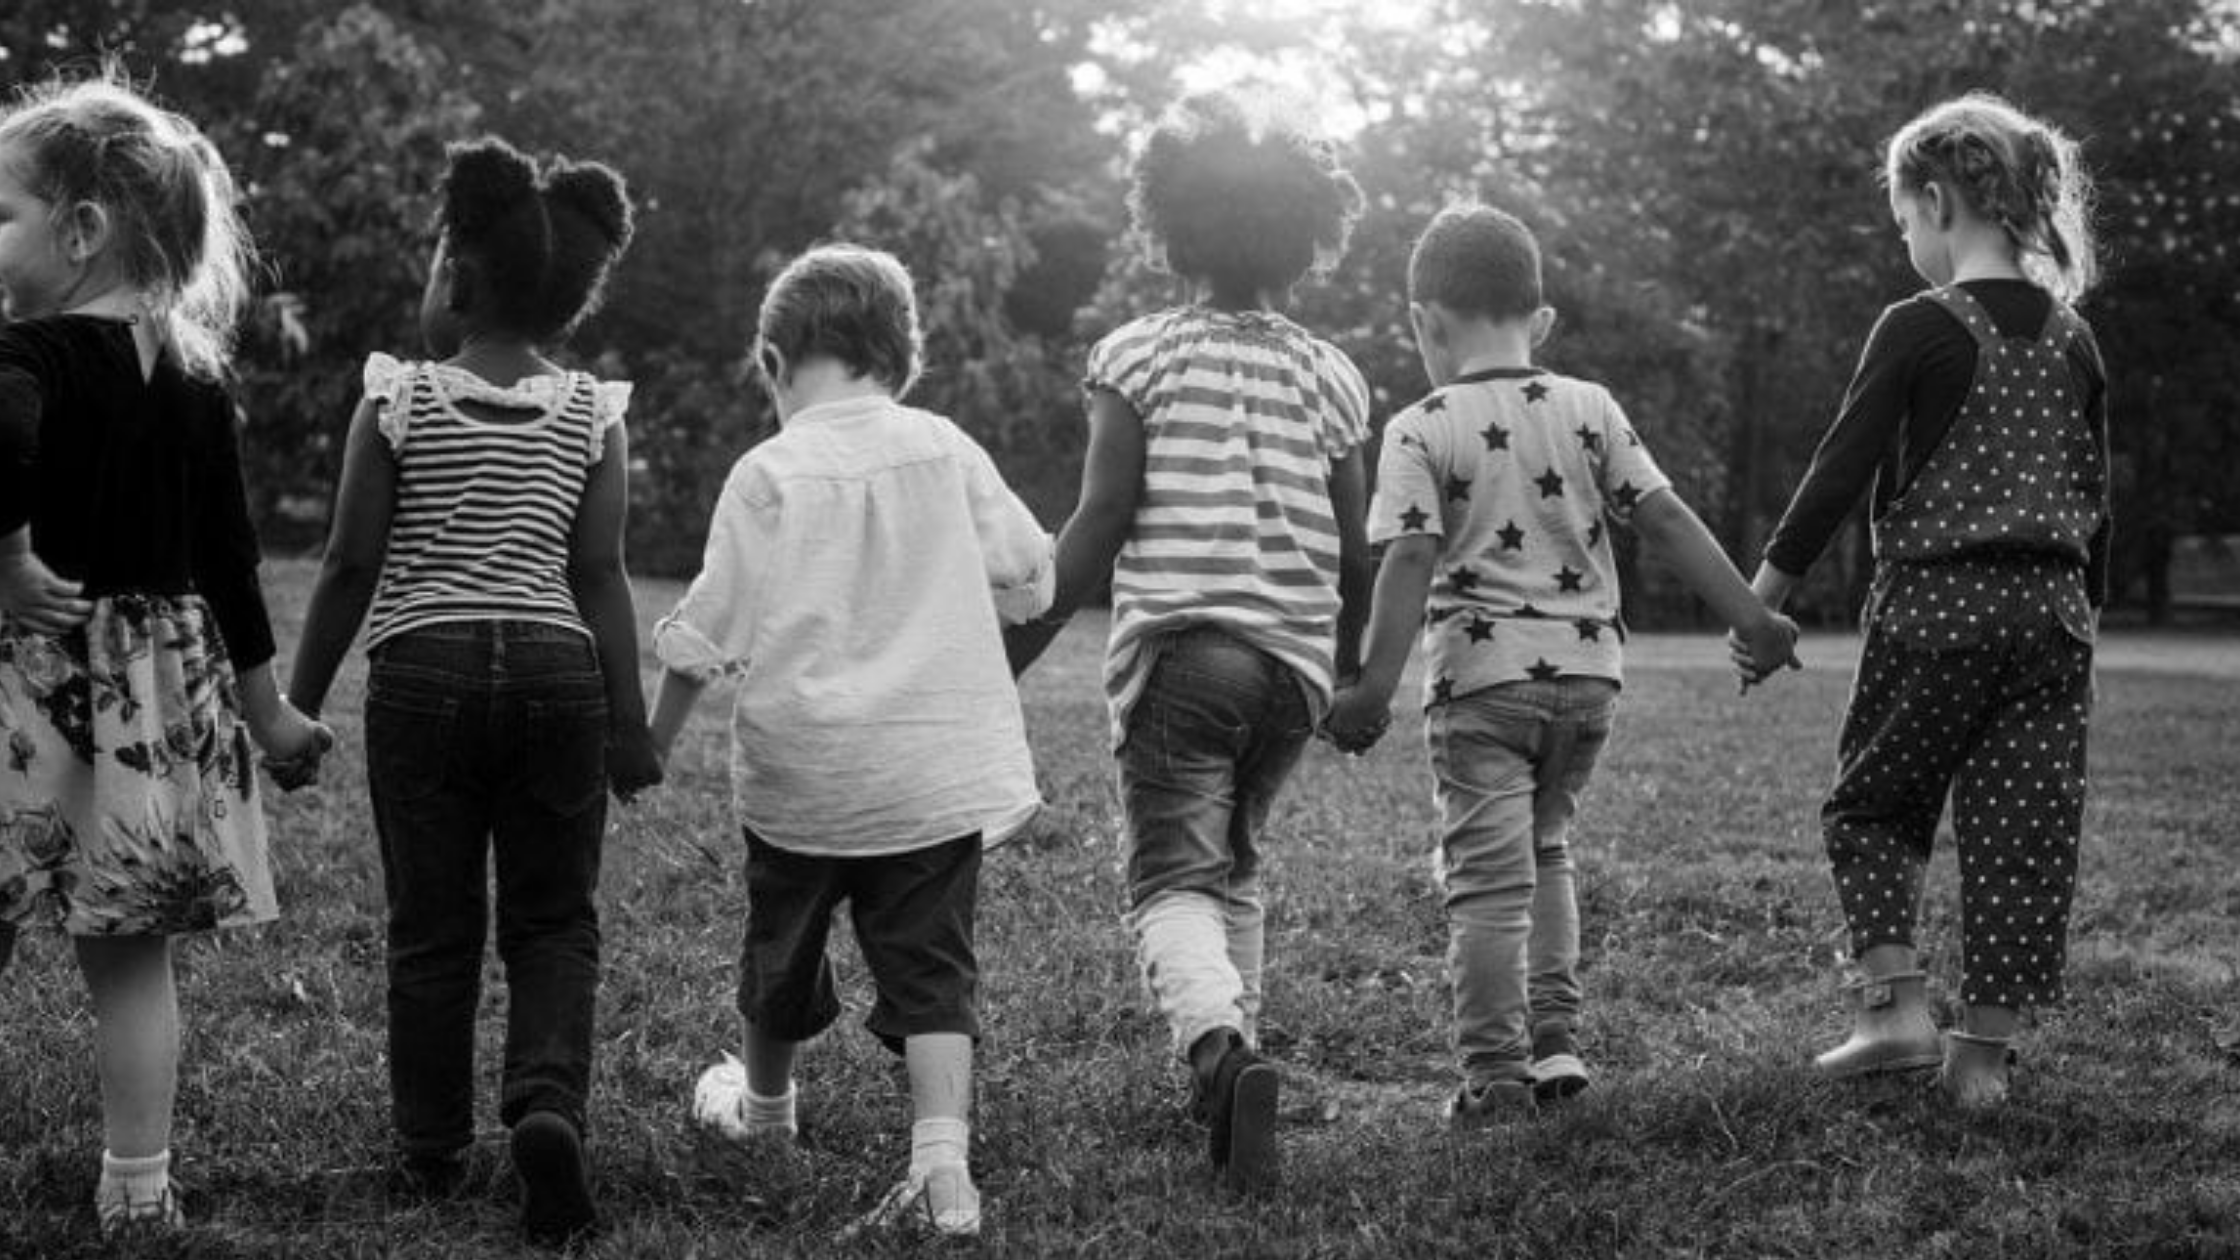 group of kids holding hands and walking